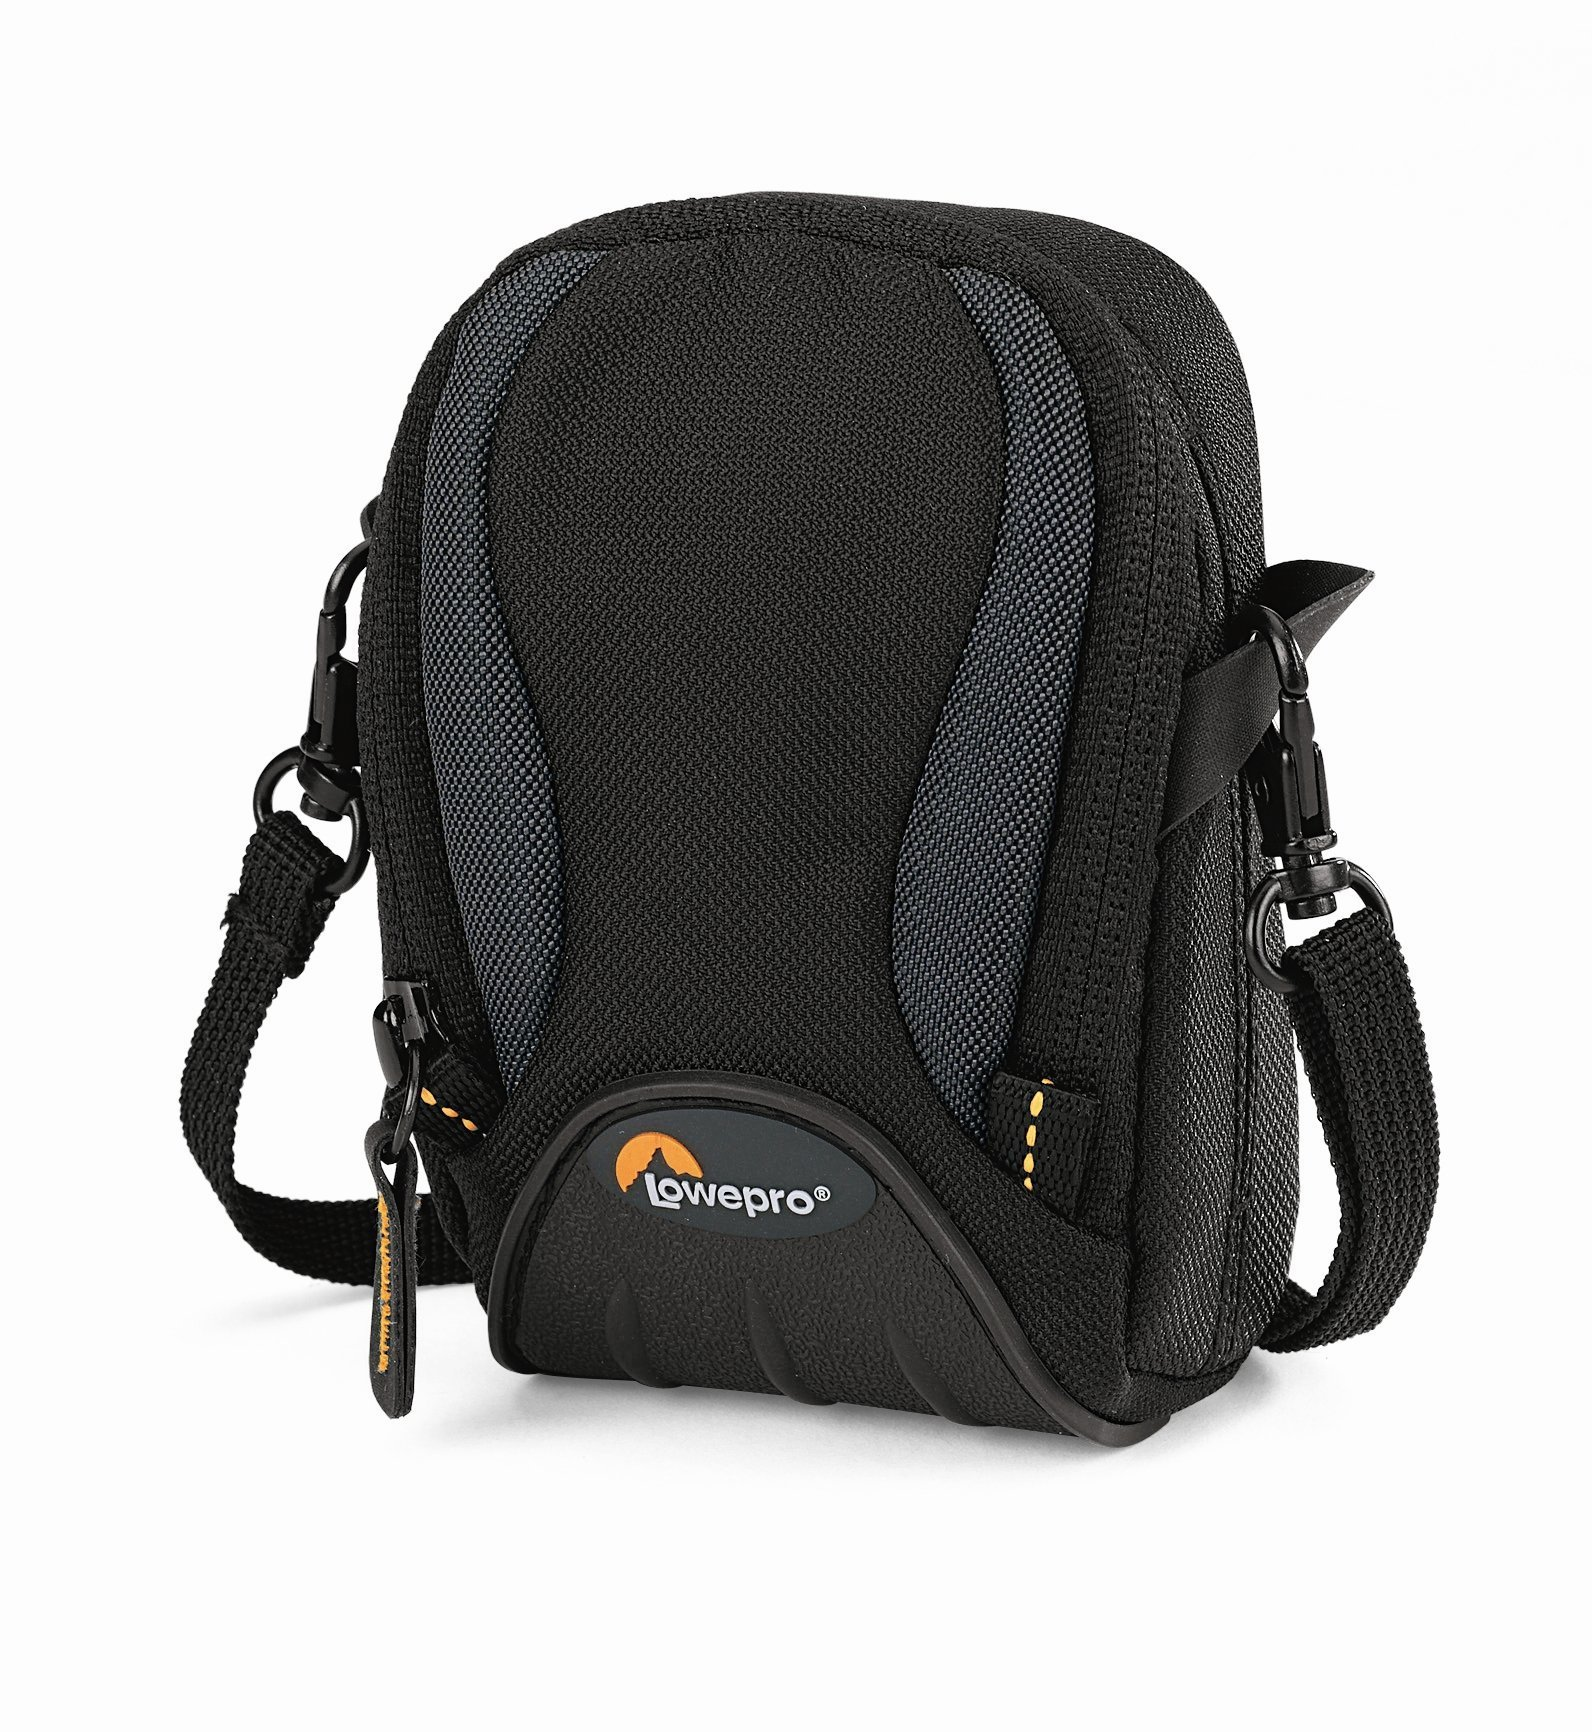 Lowepro Apex 20 AW Compact Camera Bag - A Protective Camera Pouch For Your Point and Shoot Camera With All Weather Cover